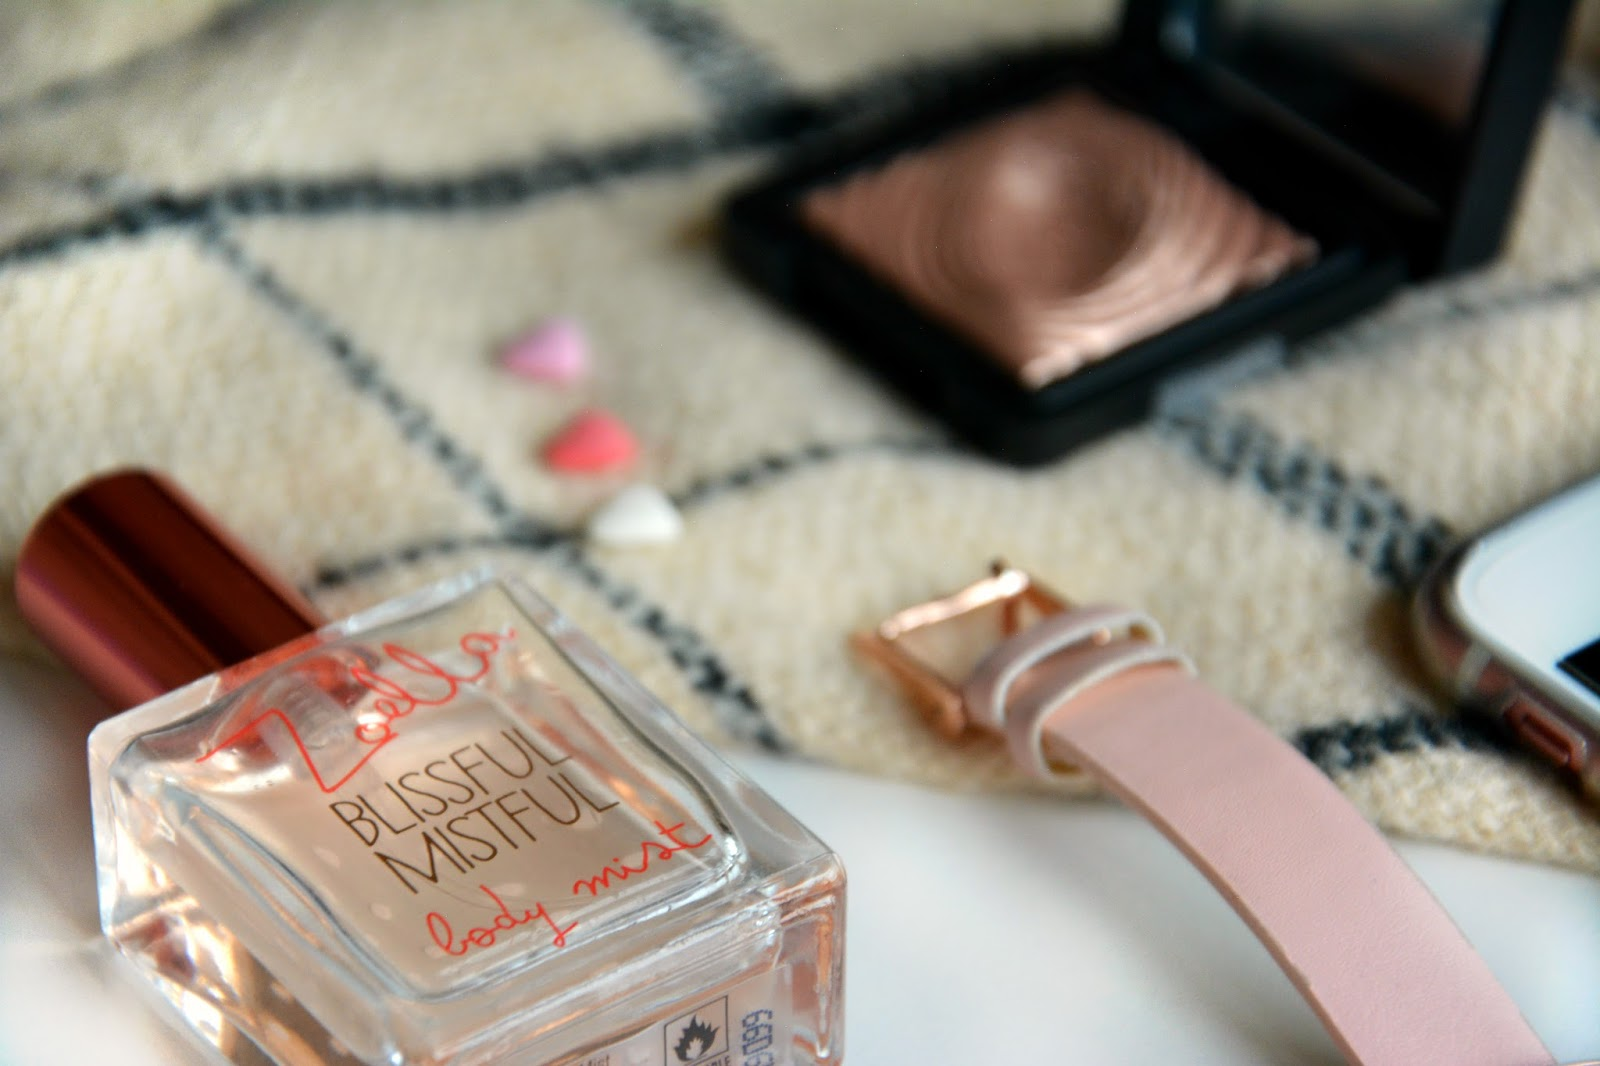 Zoella Blissful Mistful Body Mist, Asos Watch, Kiko Eyeshadow, Zara Scarf